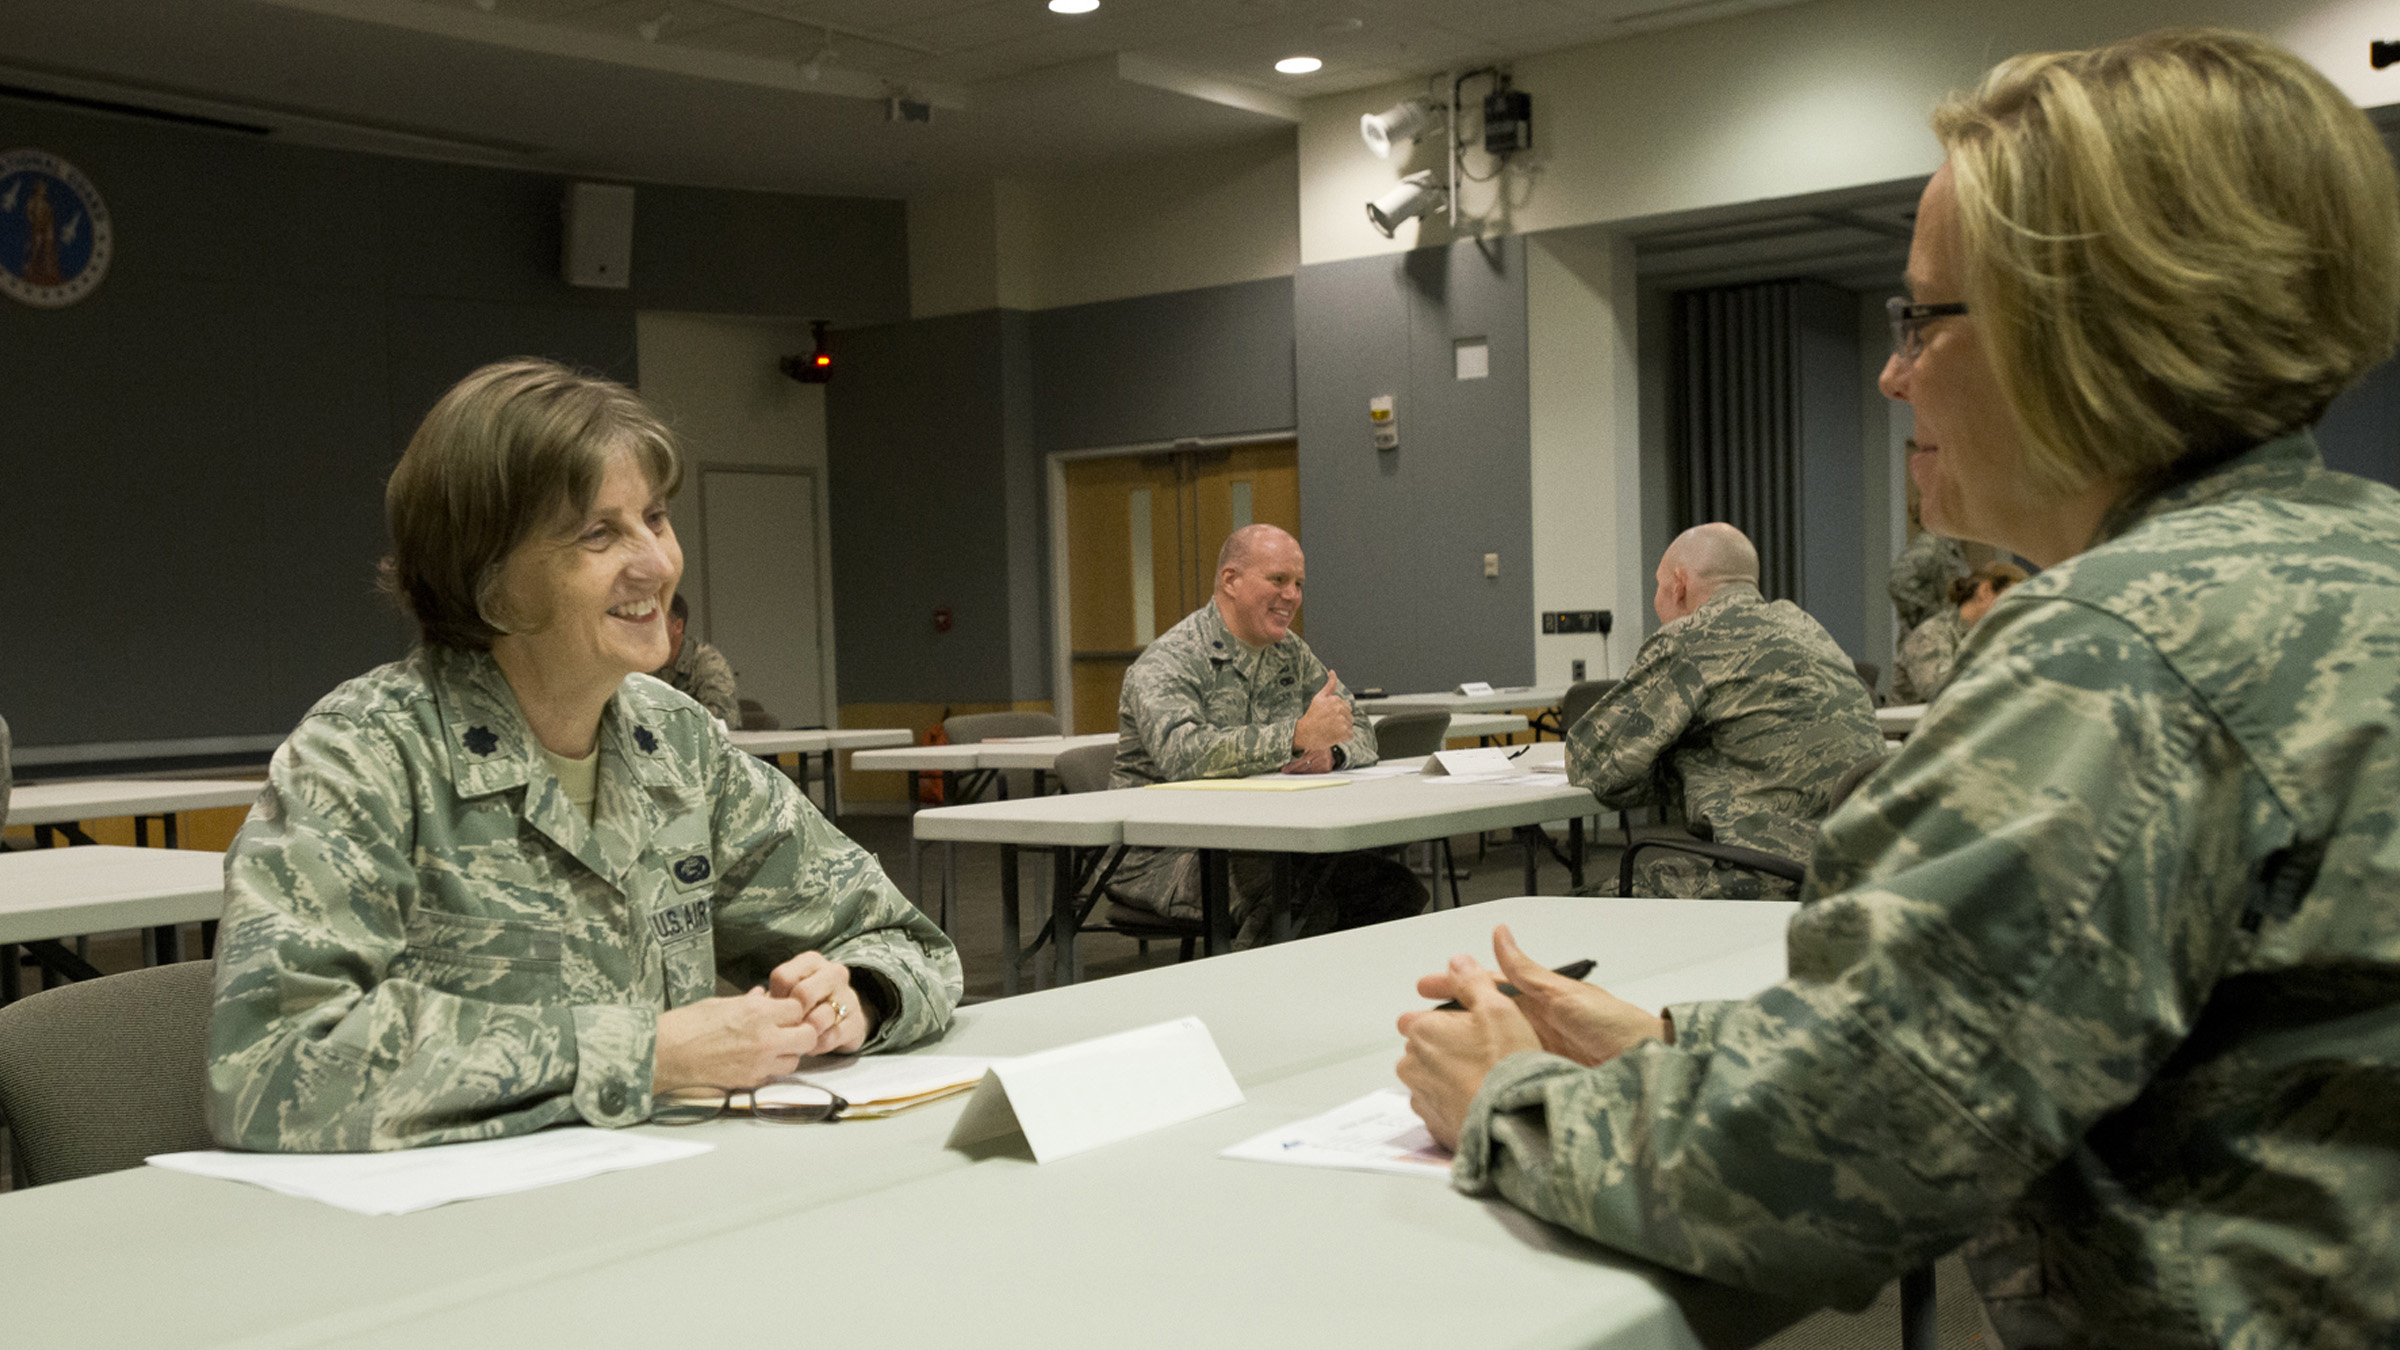 Two service members talking at a table